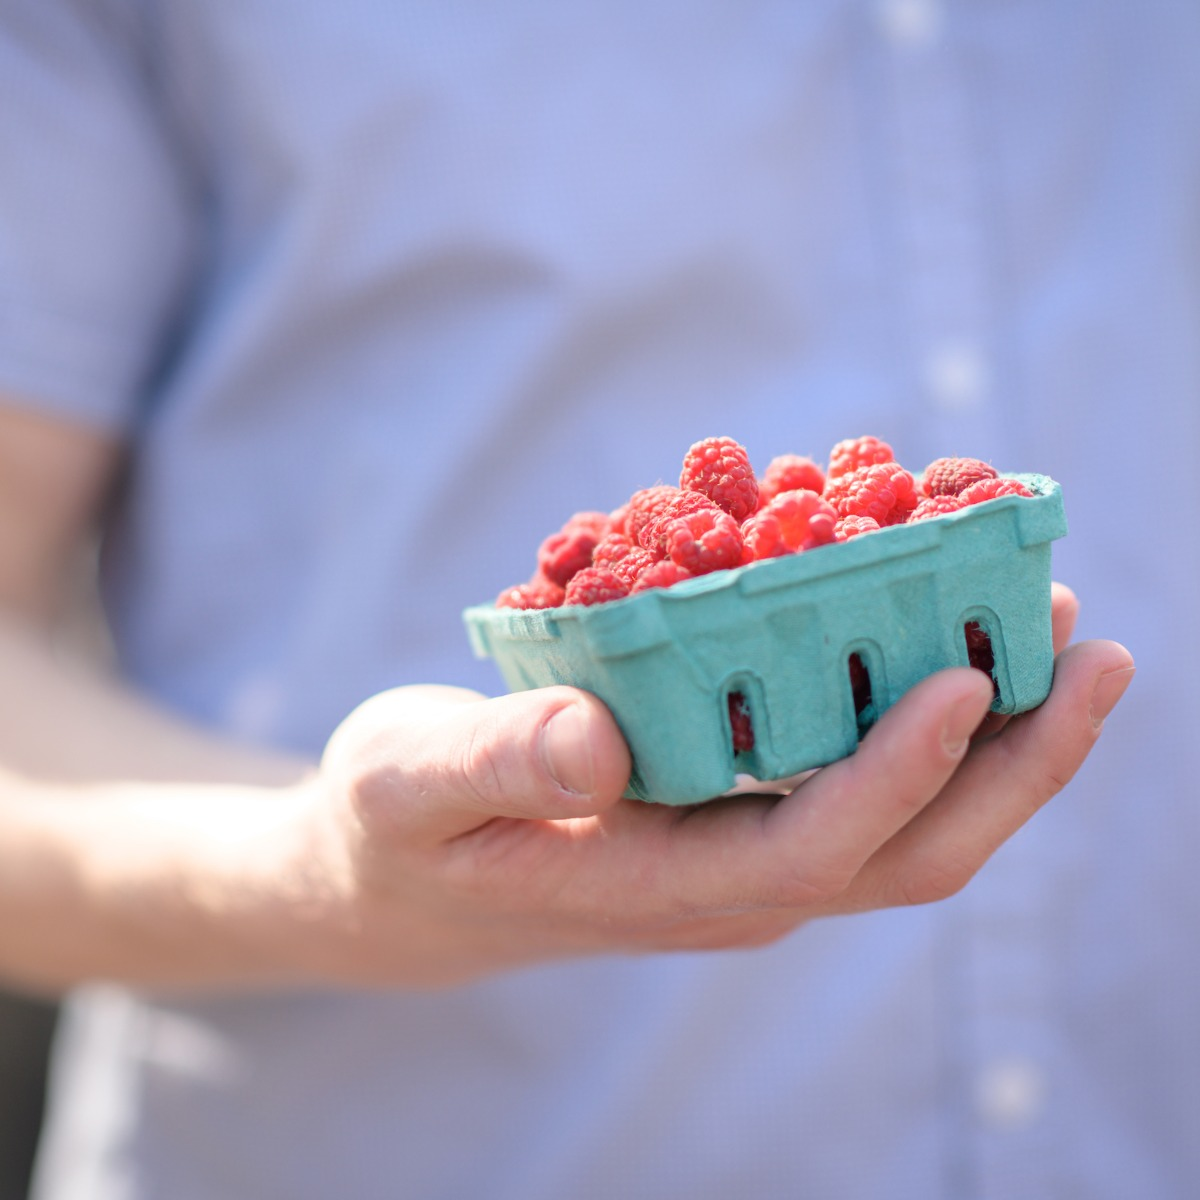 A hand holds a basket of ripe berries.